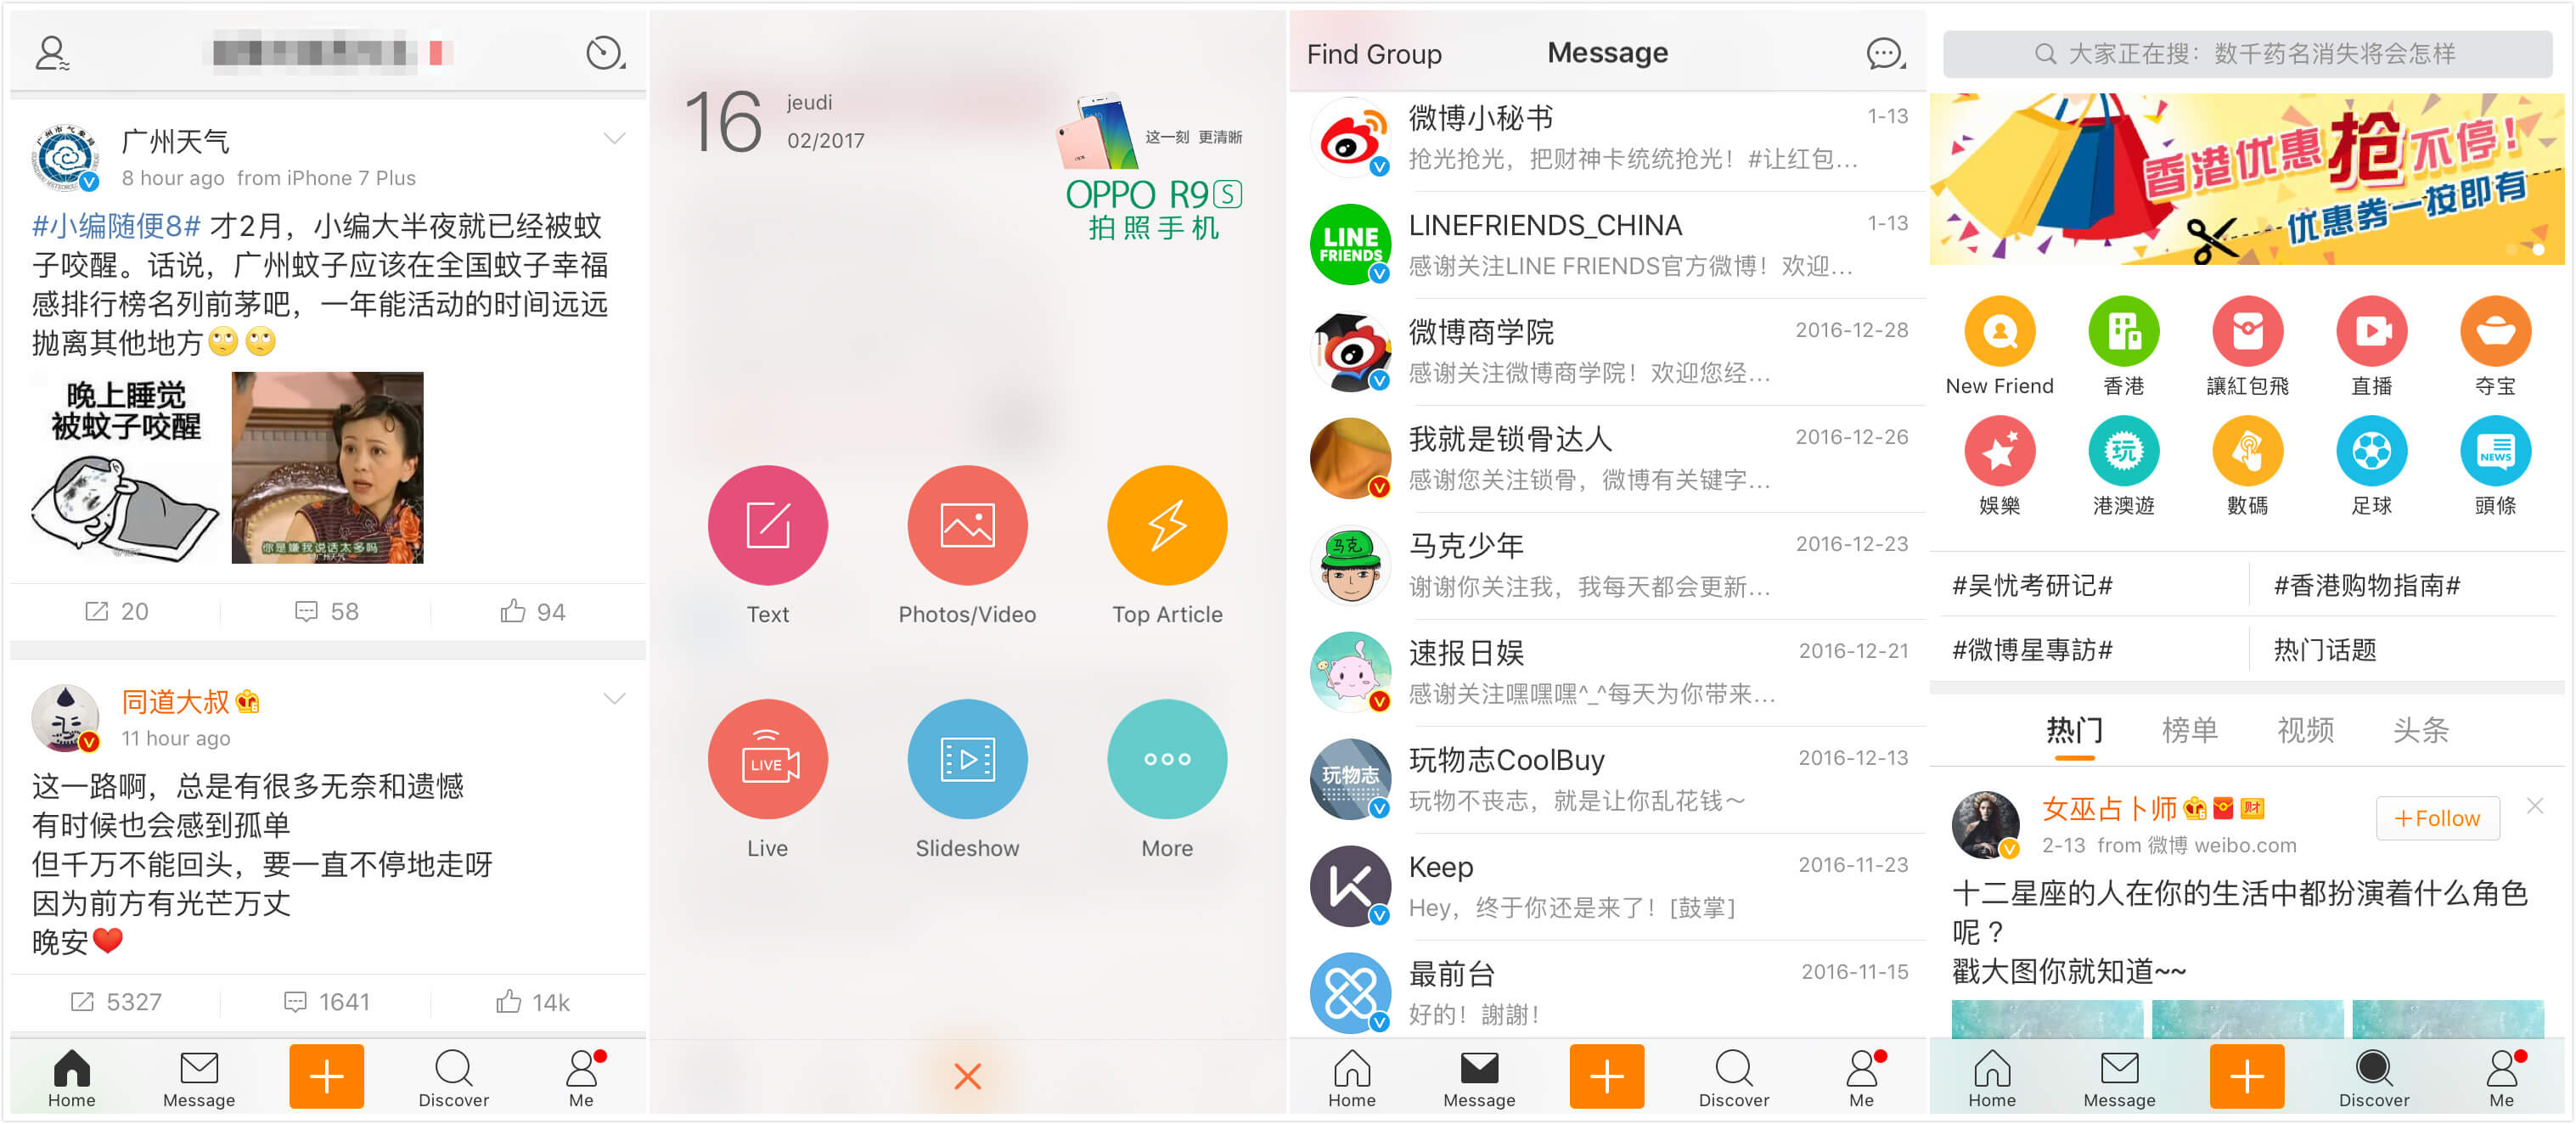 Weibo mobile app interface